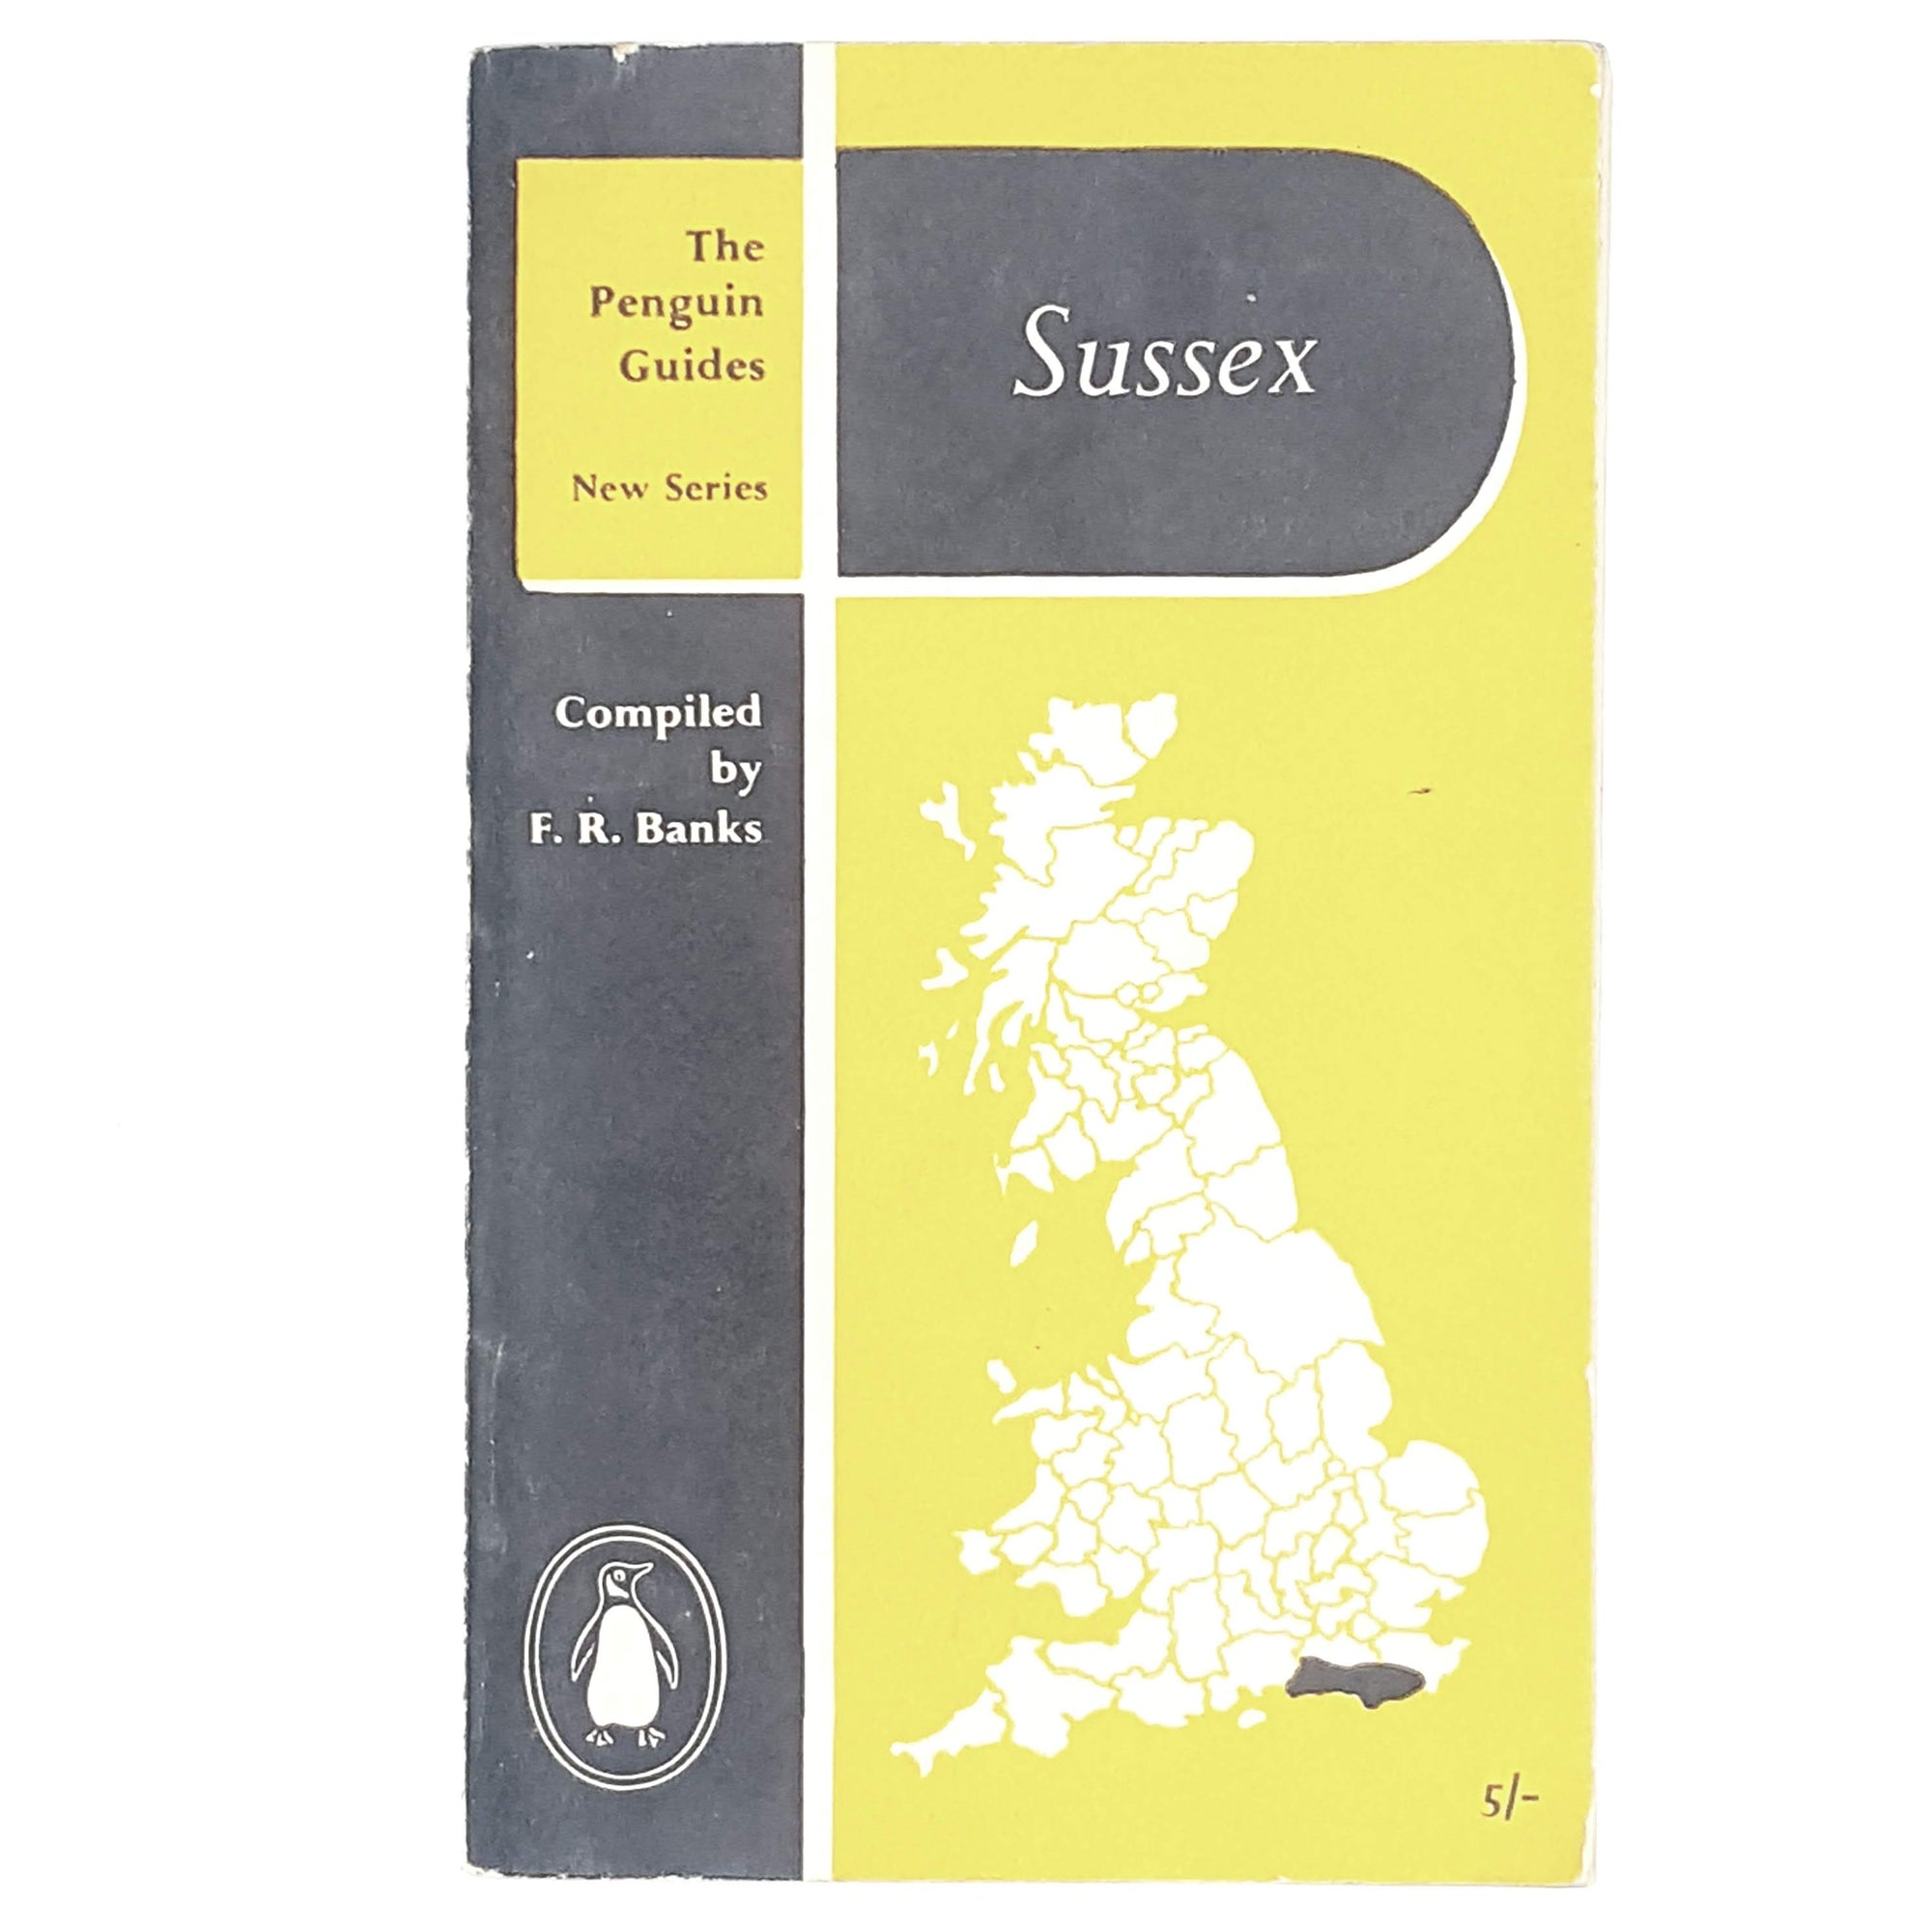 First Edition Penguin Guide to Sussex 1957